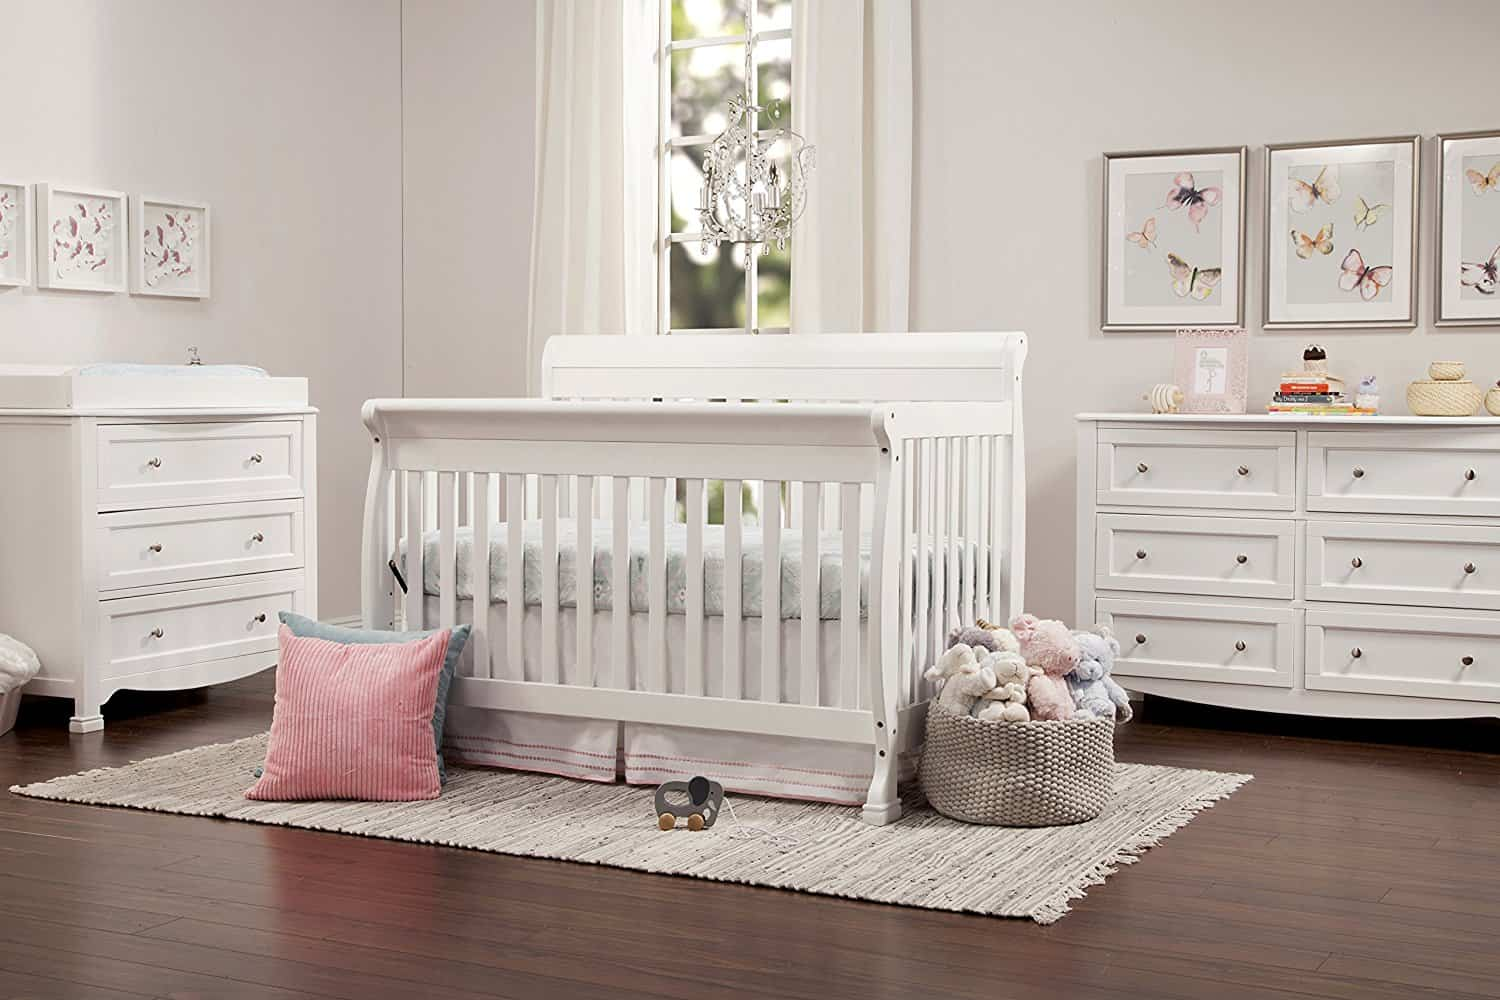 Baby Bedroom Set.  Best Baby Crib y Bargains